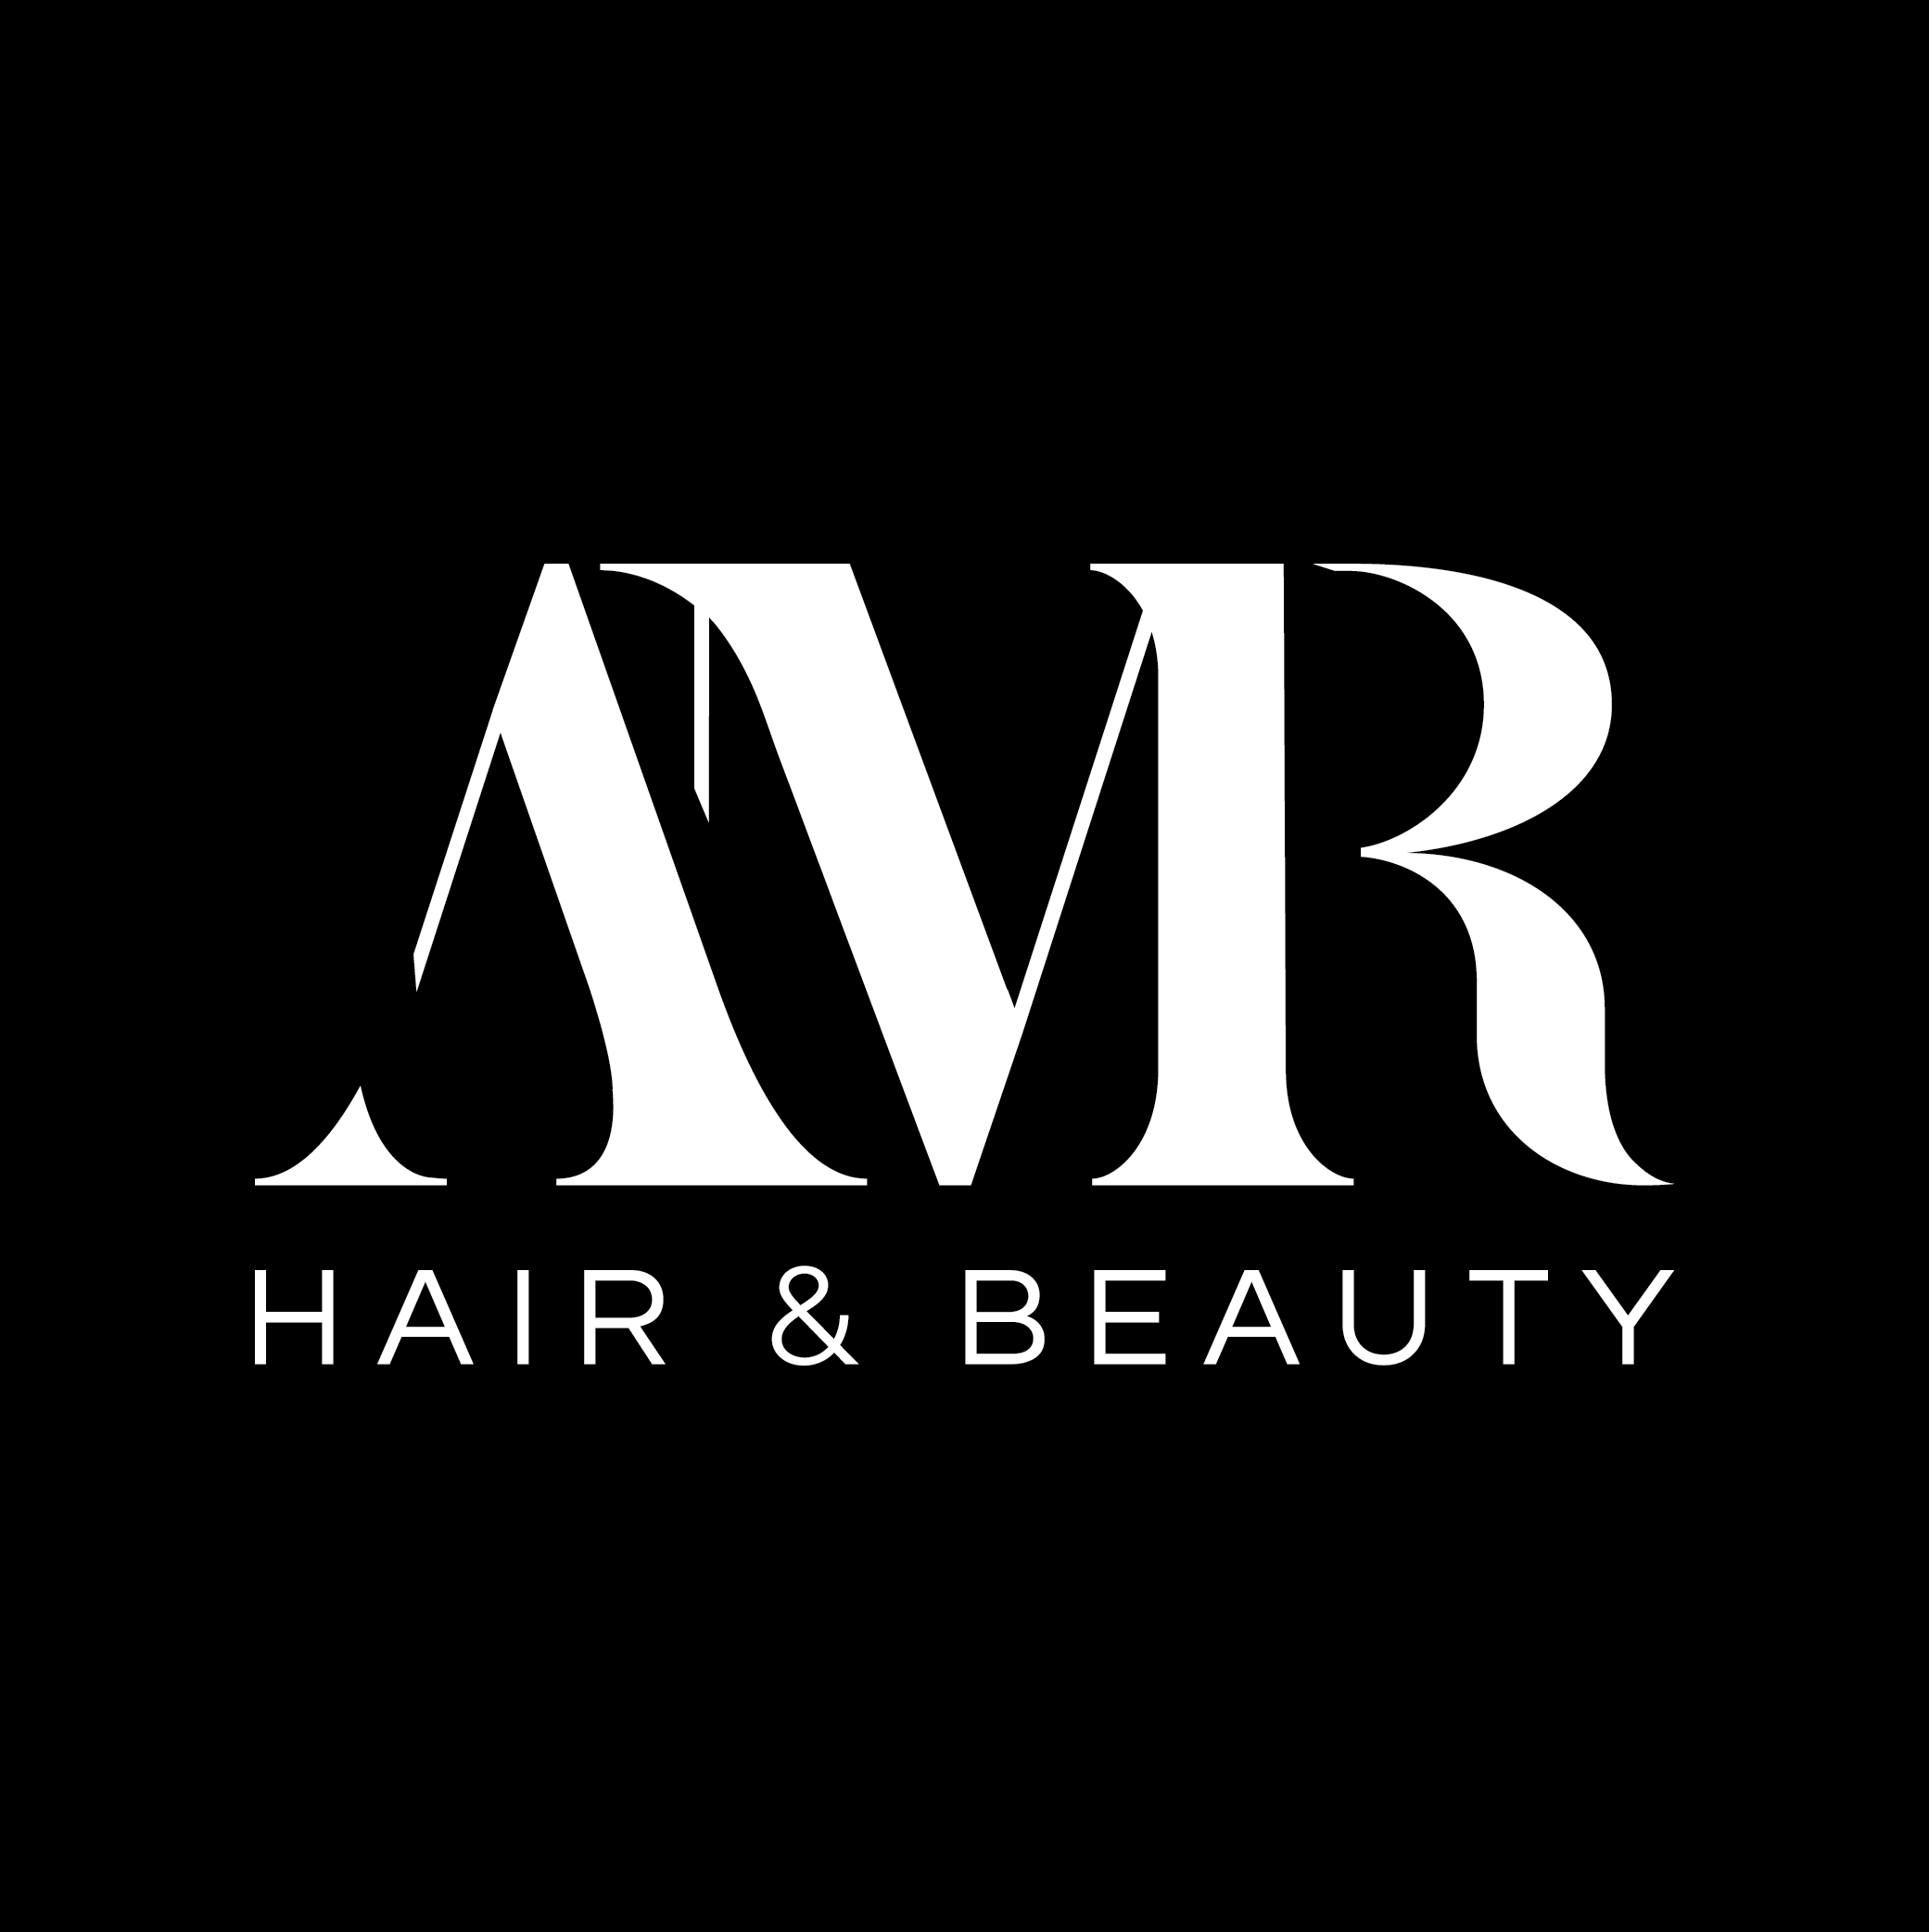 AMR Hair & Beauty Supplies Pty Ltd Logo and Images